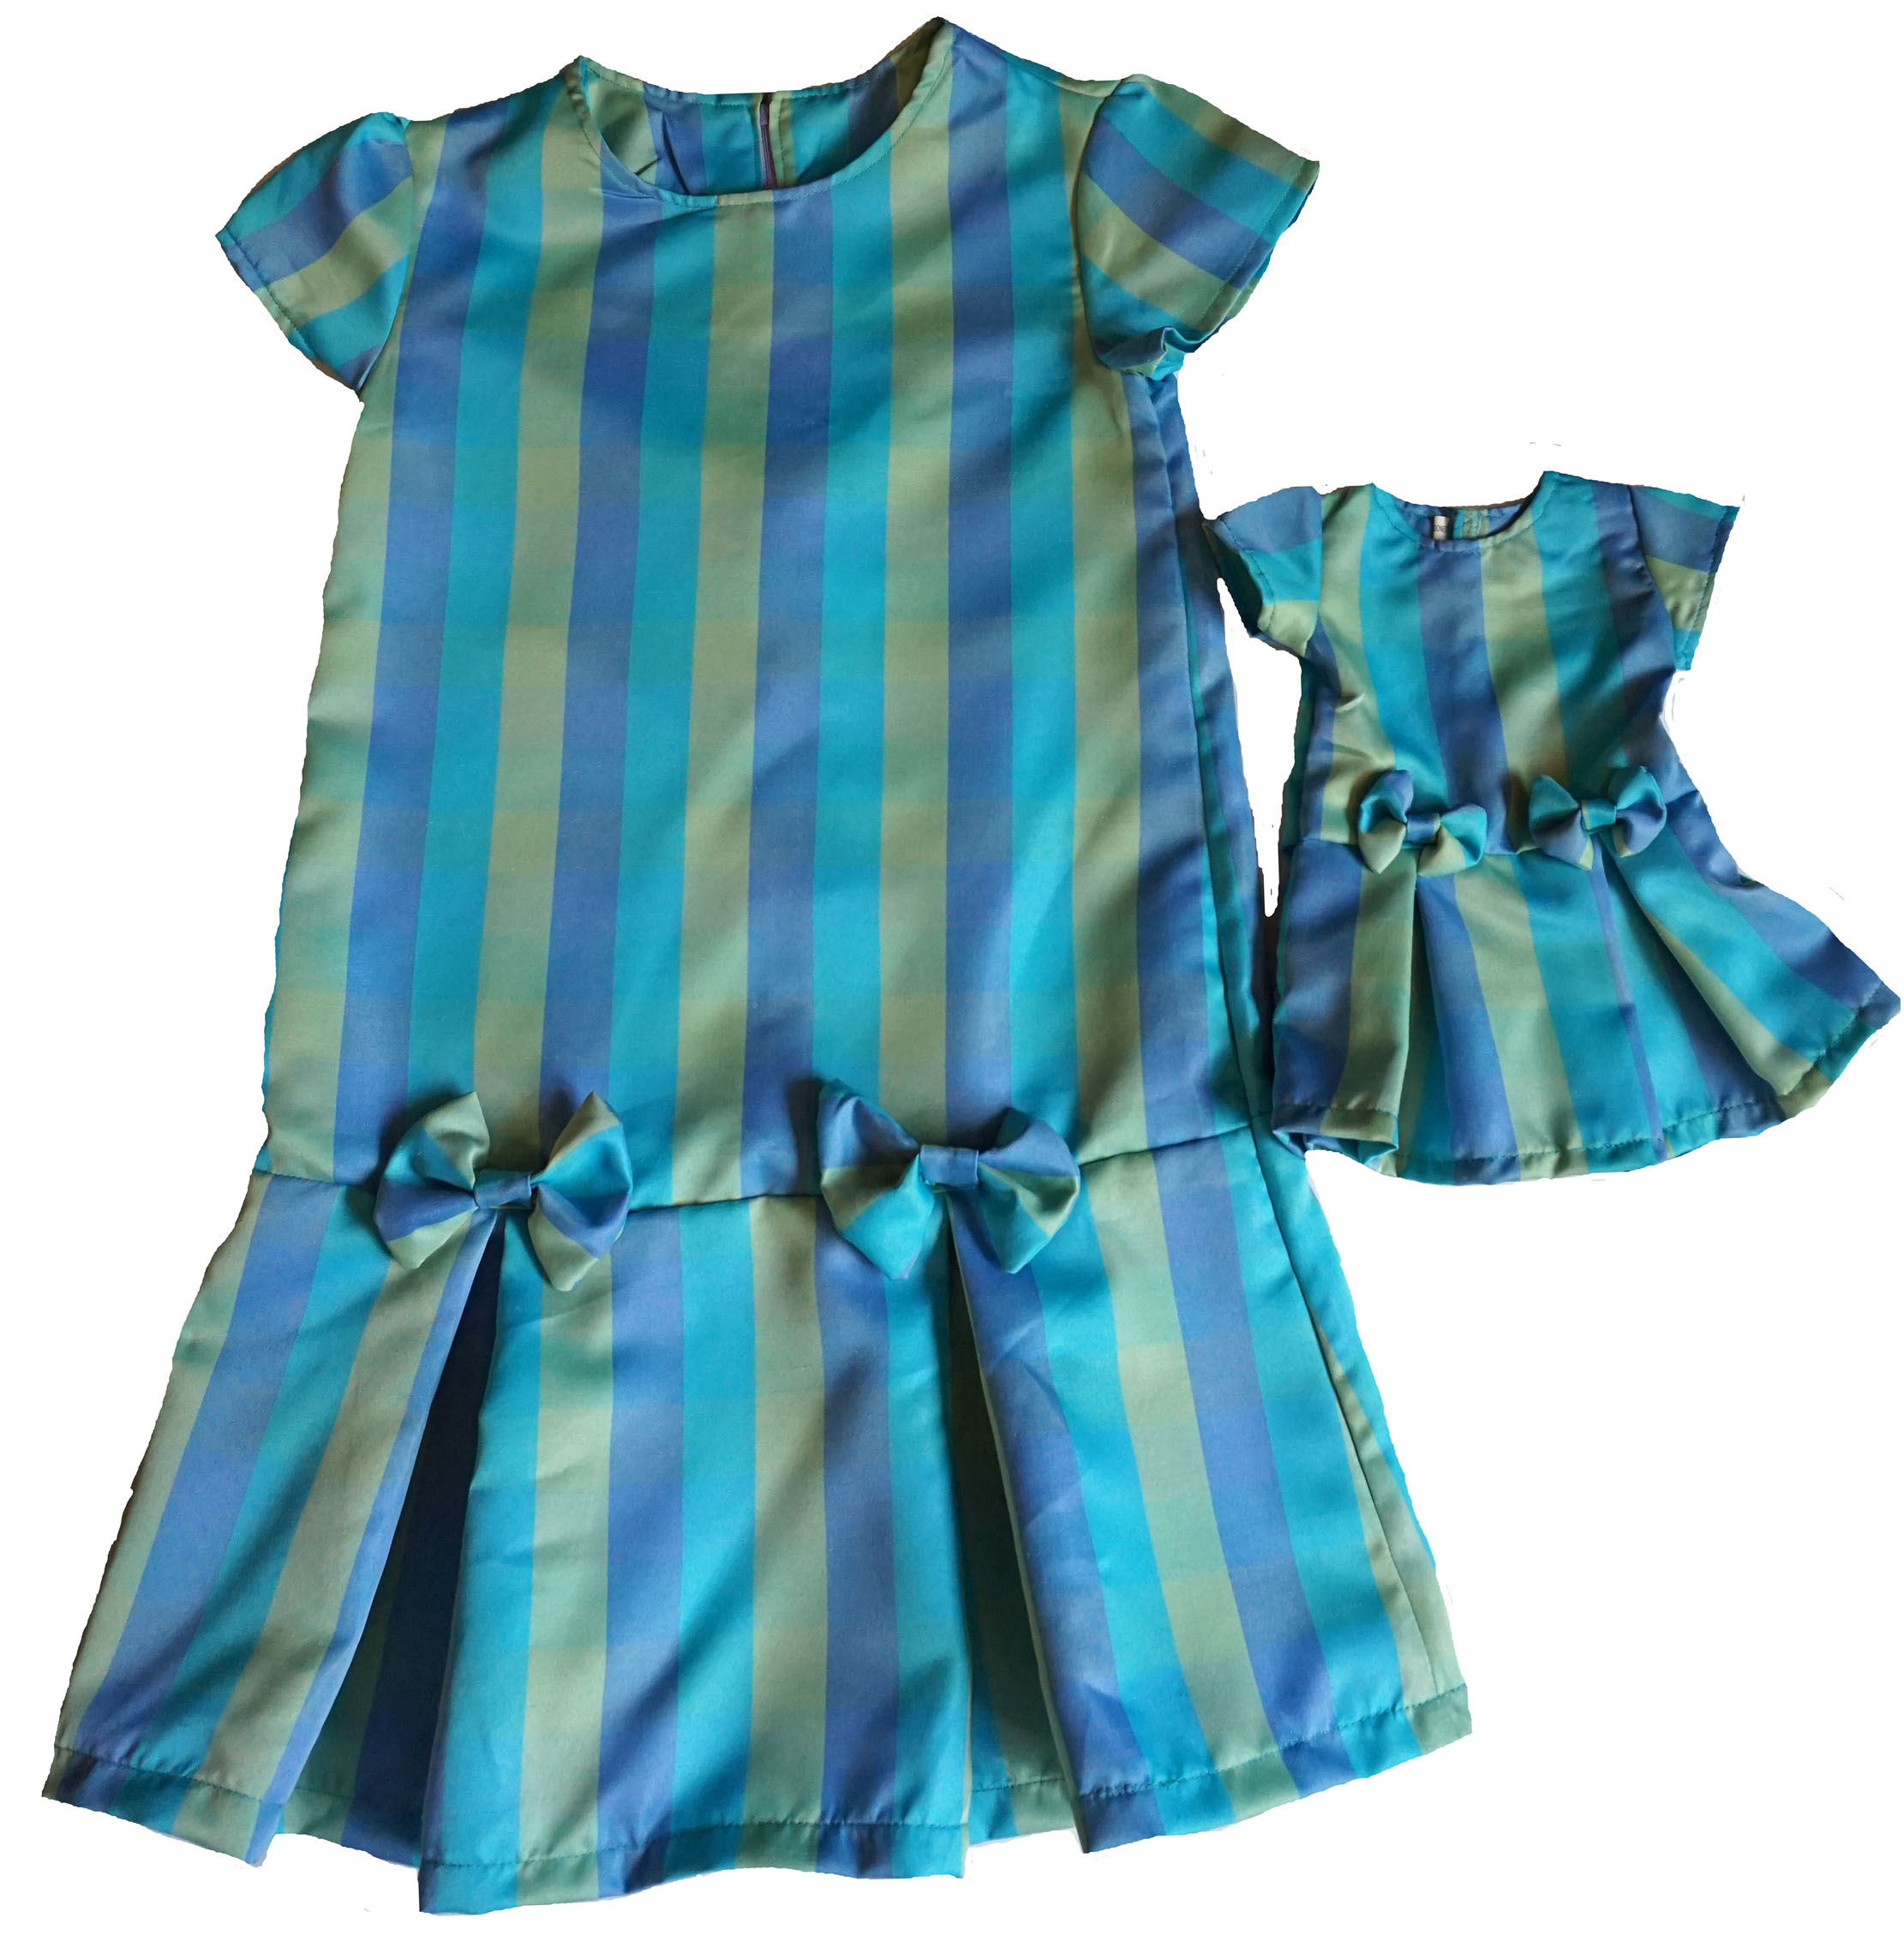 Size 10 Matching Girl And Doll Green And Blue Stripe And Bows Dresses